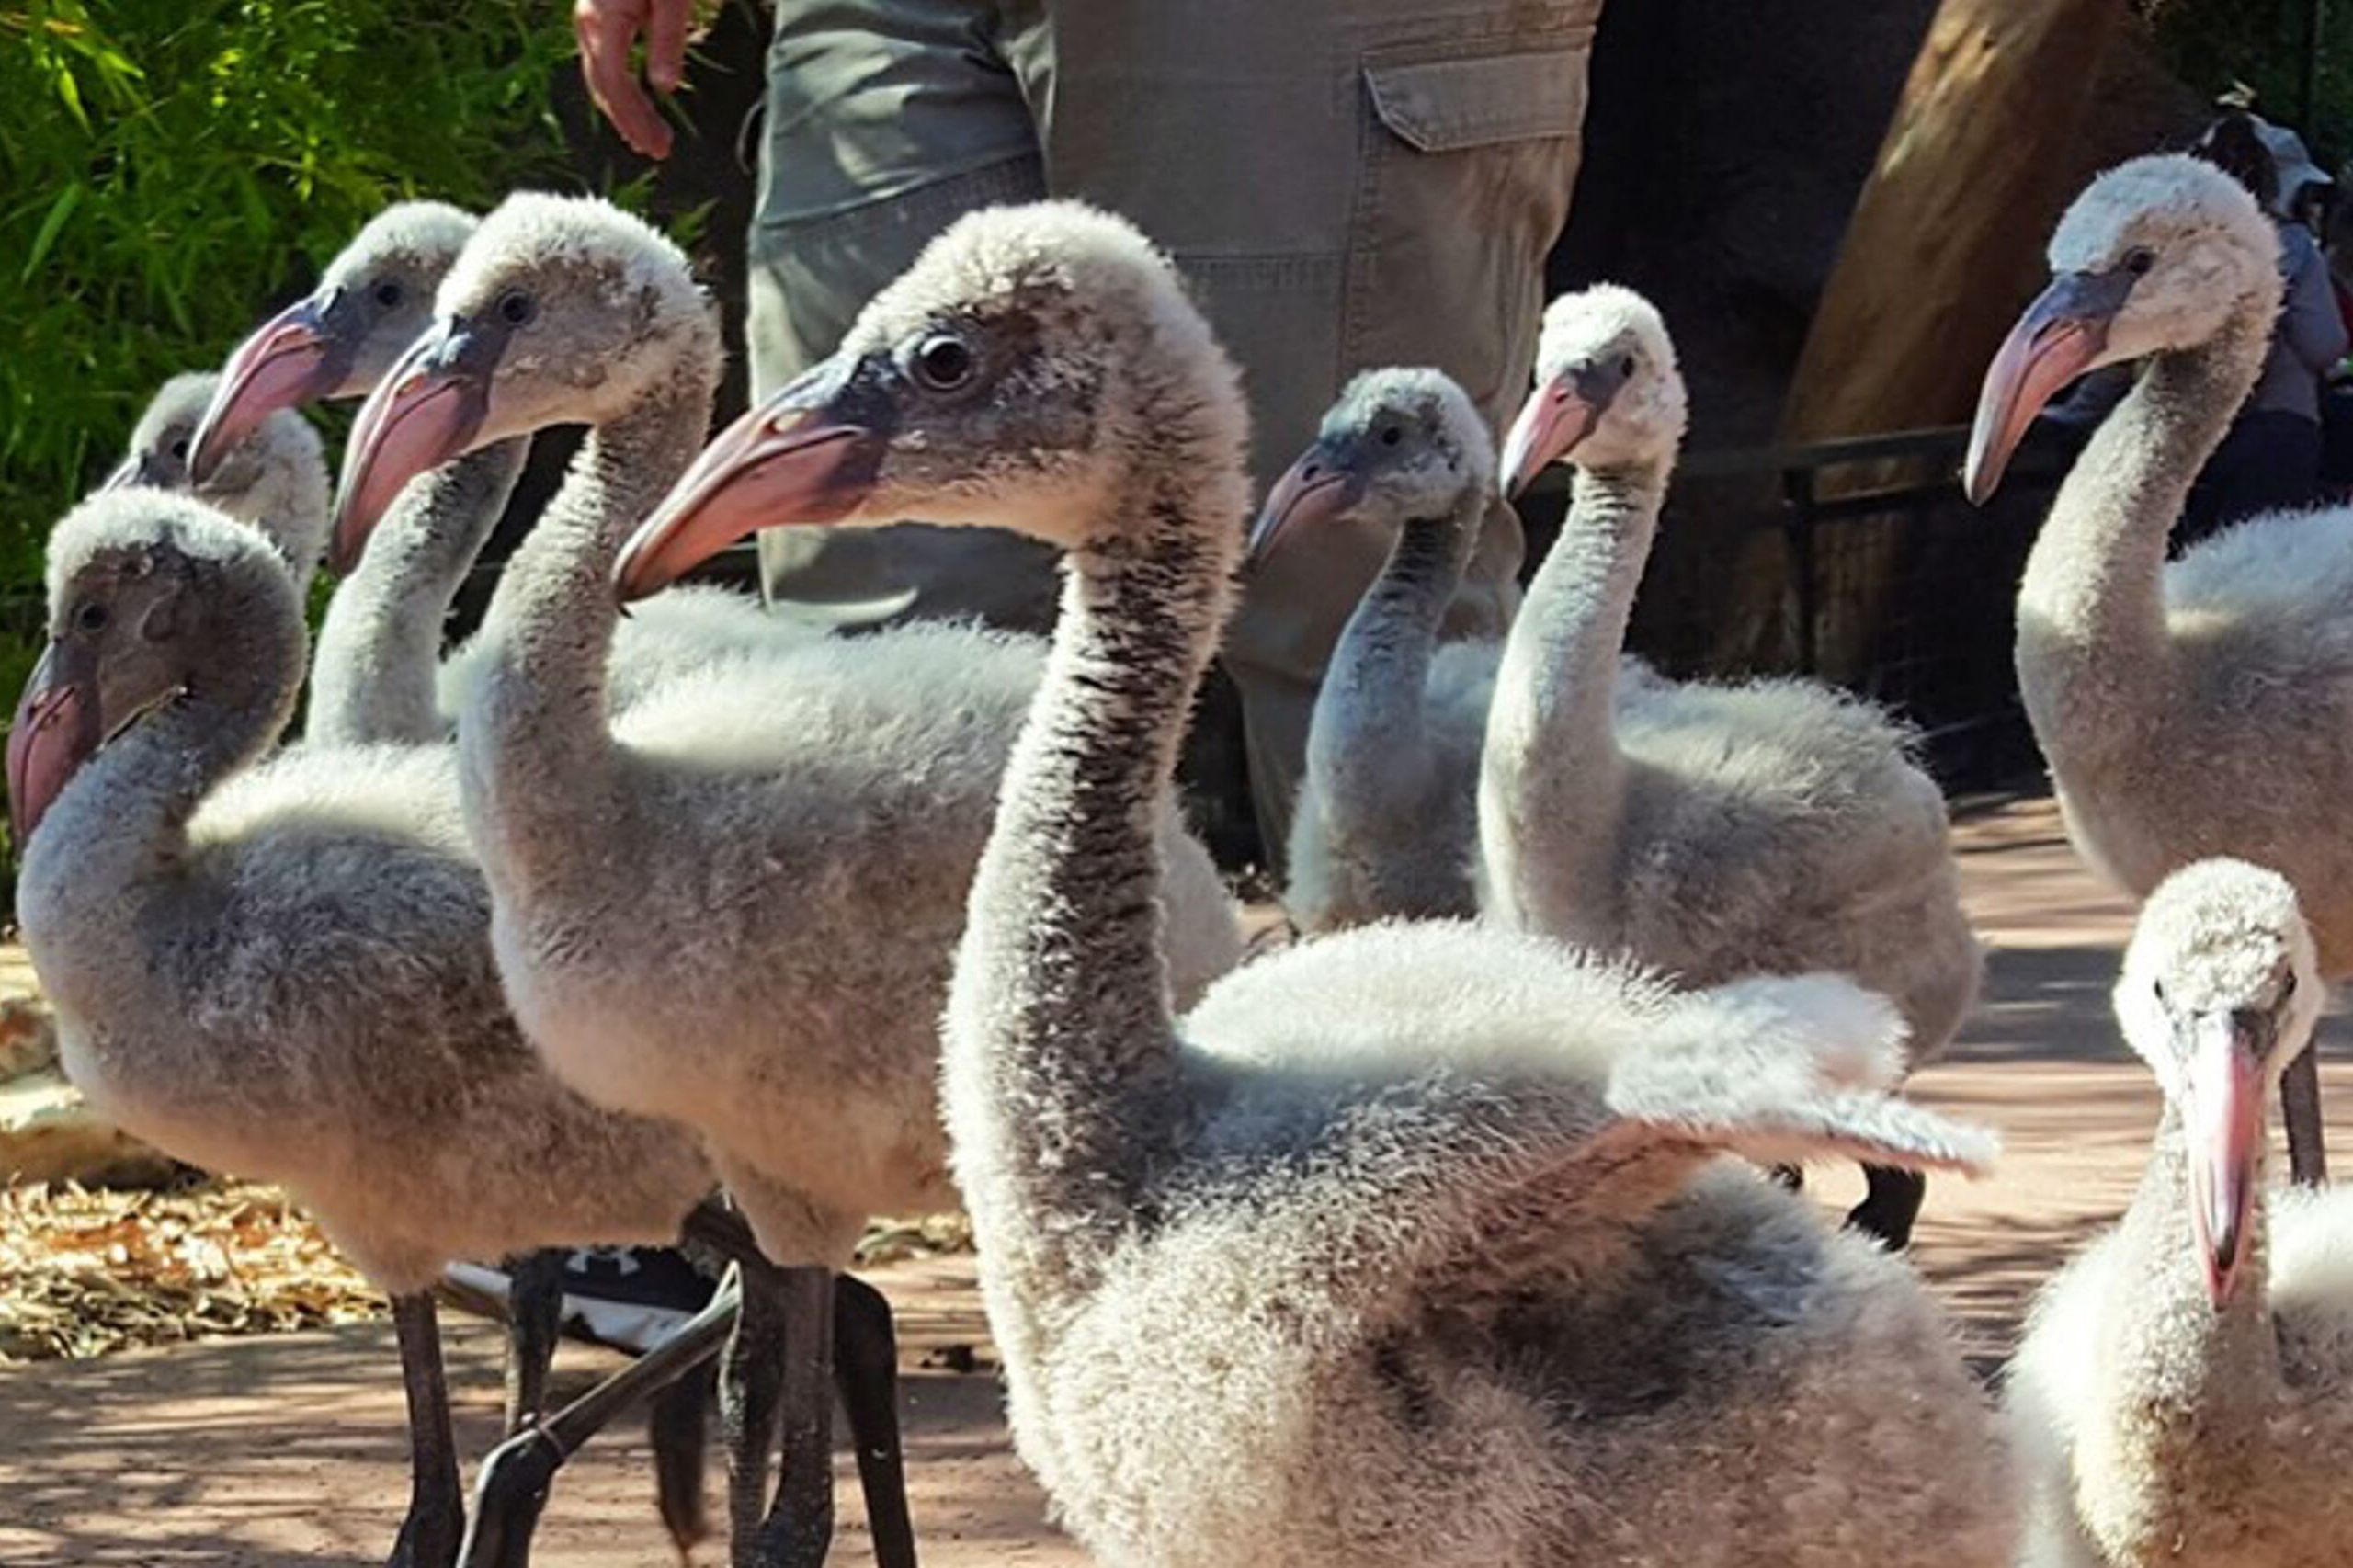 Visit Flamingo Chicks & More at the Phoenix Zoo in Arizona!